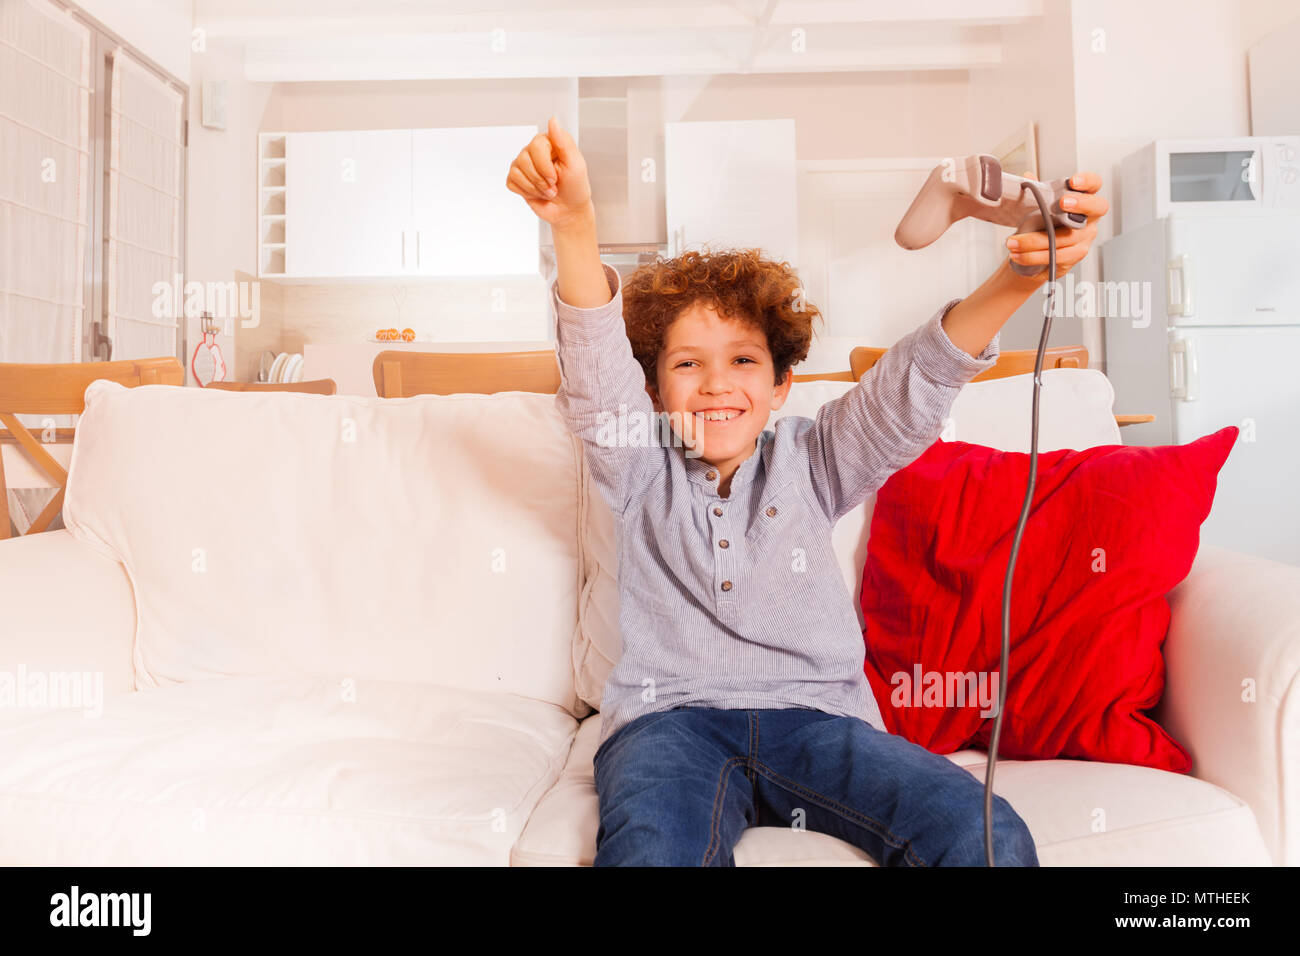 Portrait of joyful preteen boy with joystick playing videogames at home - Stock Image